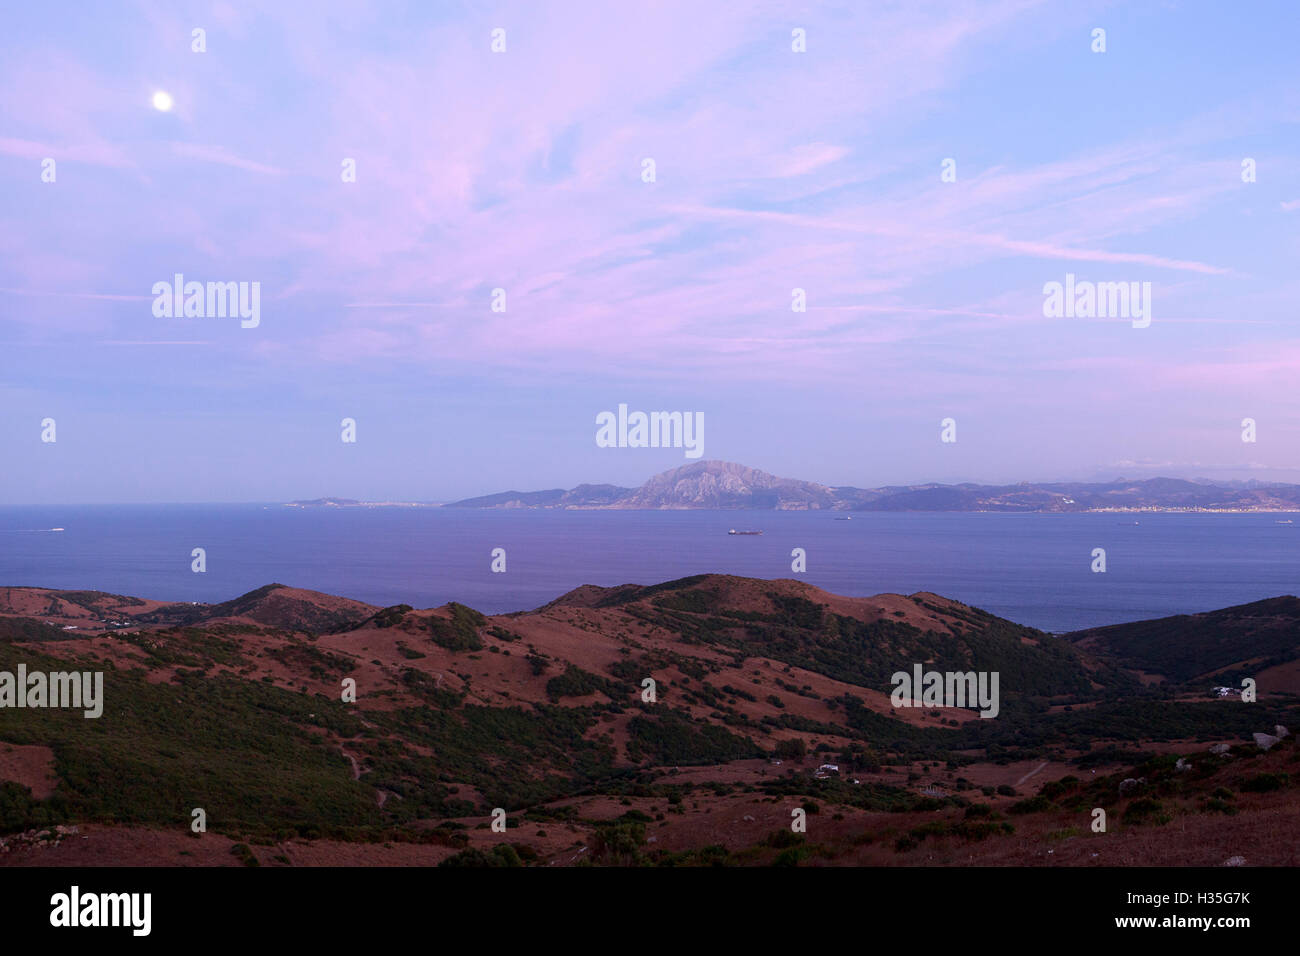 Andalusia, Spain. A general view of the north of Morocco and South of Spain. Pako Mera Stock Photo